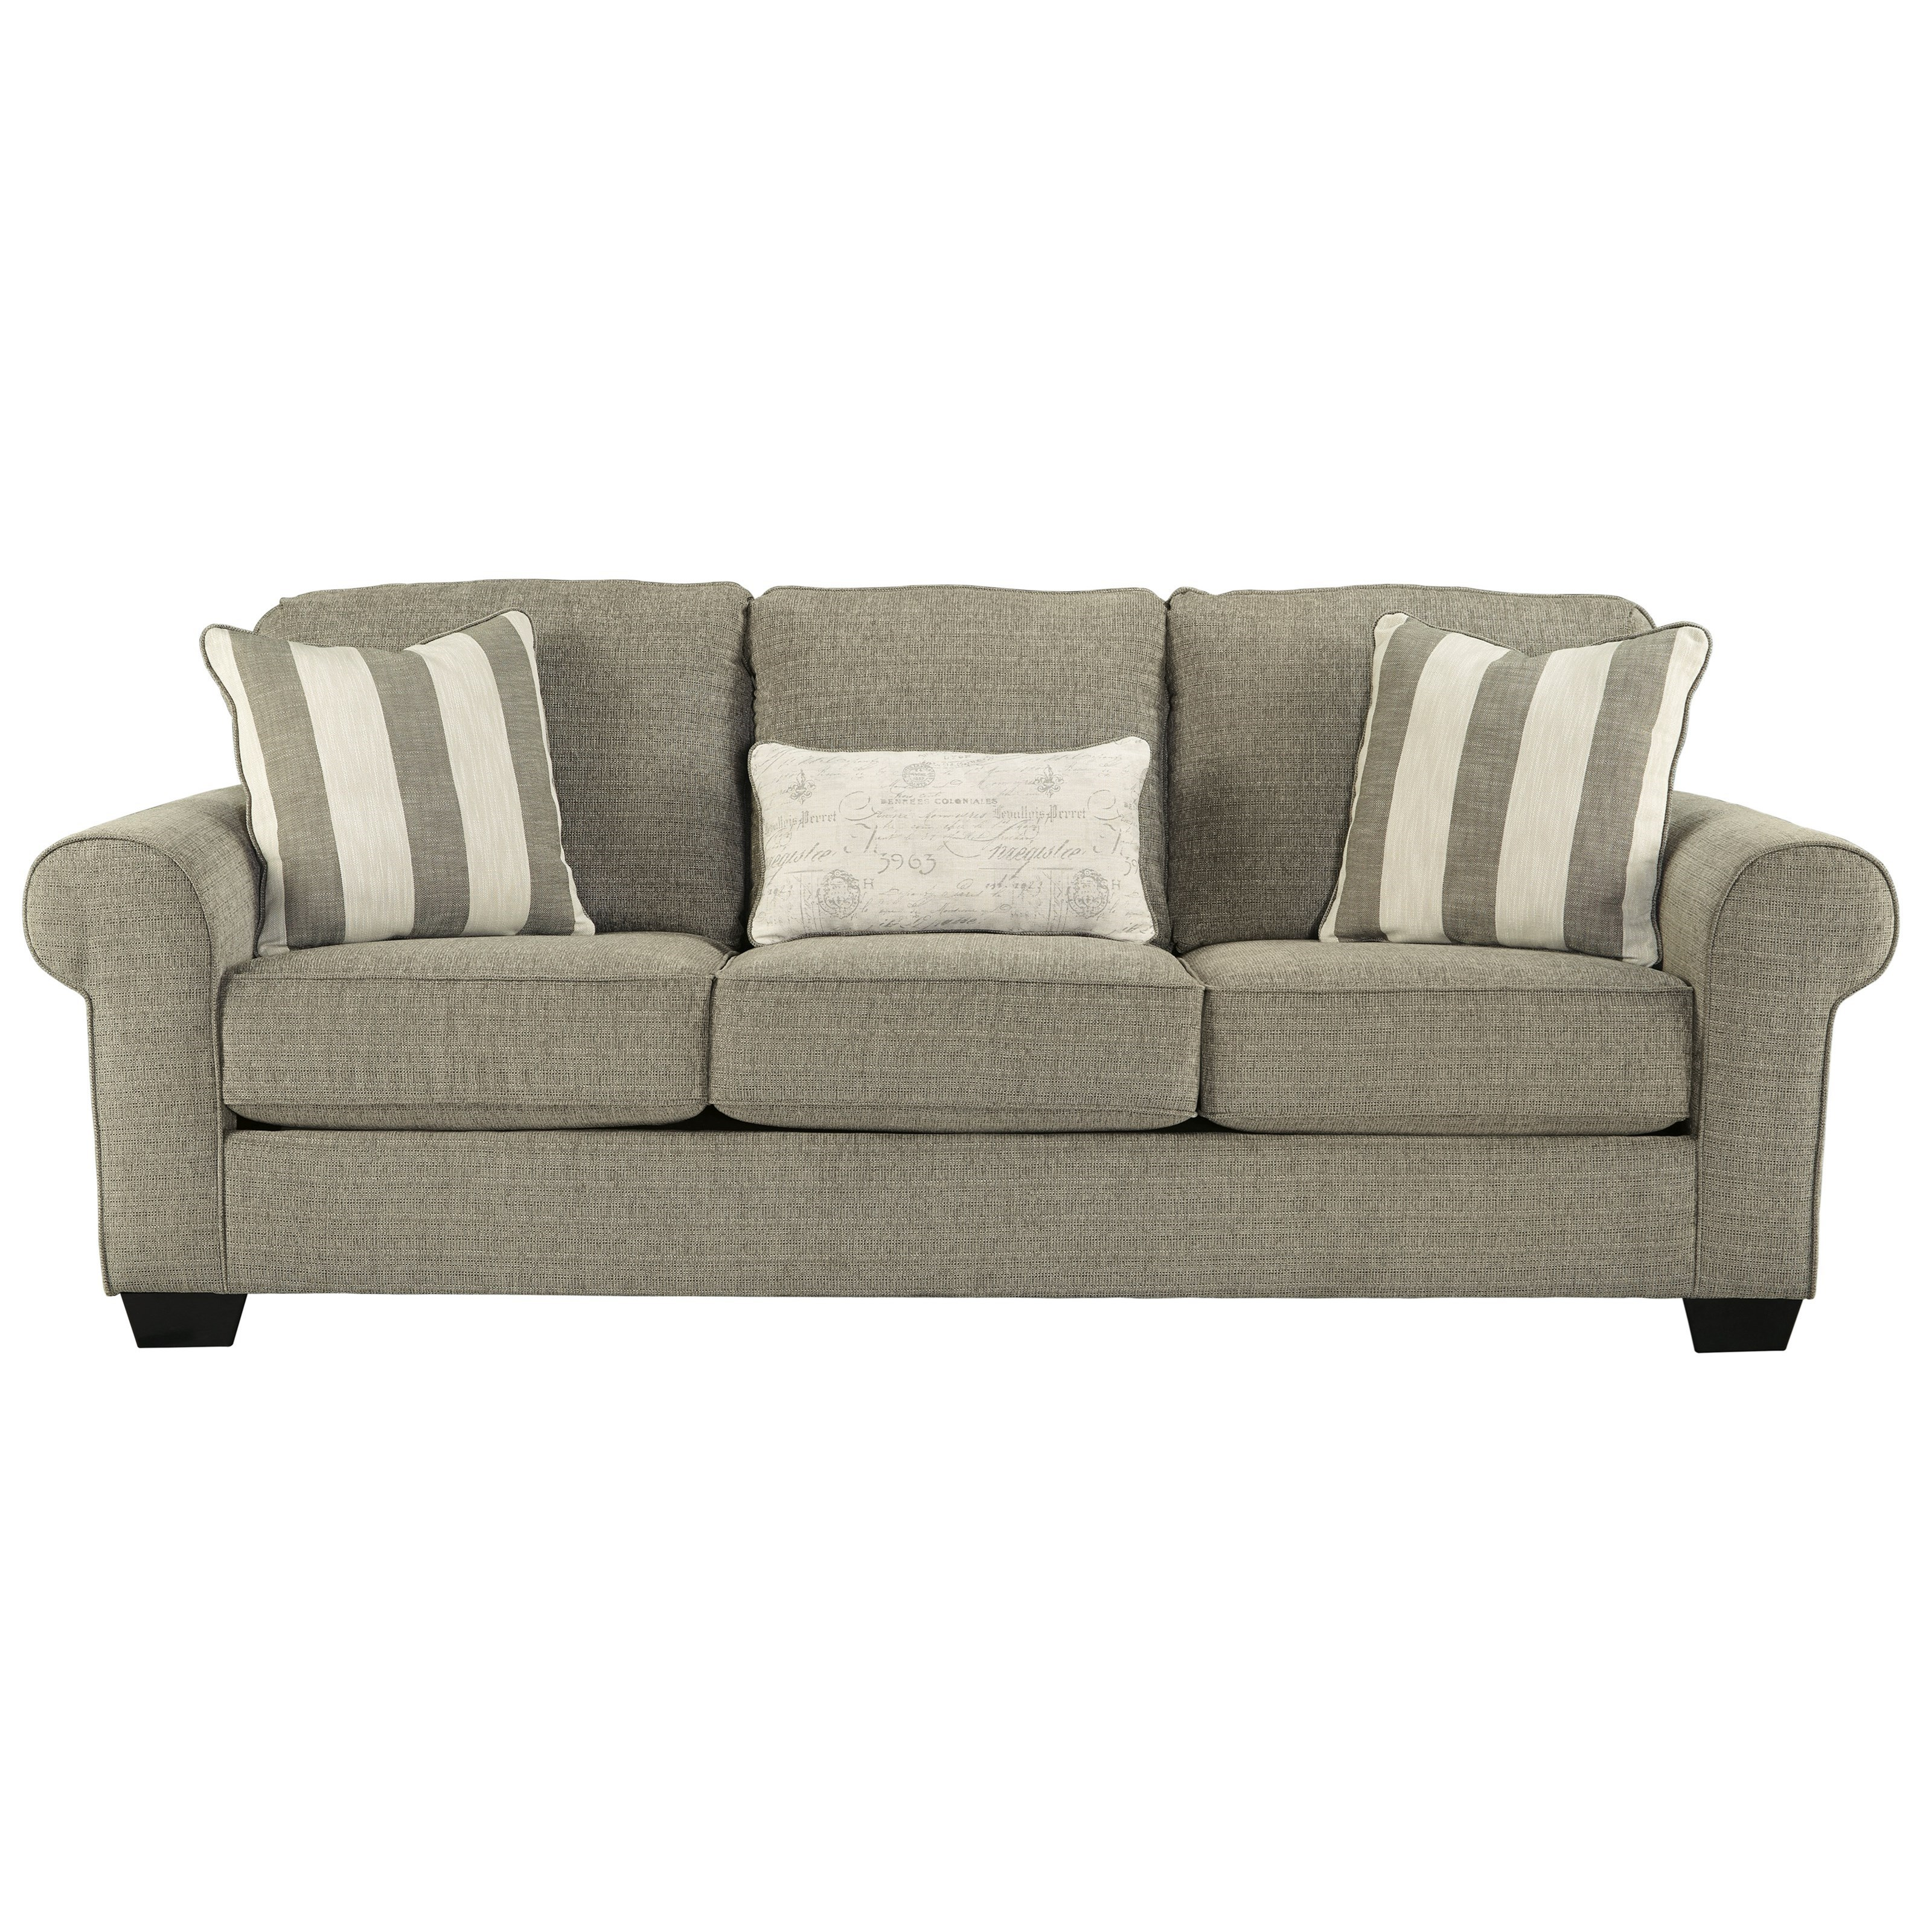 Signature Design By Ashley Baveria Queen Sofa Sleeper With